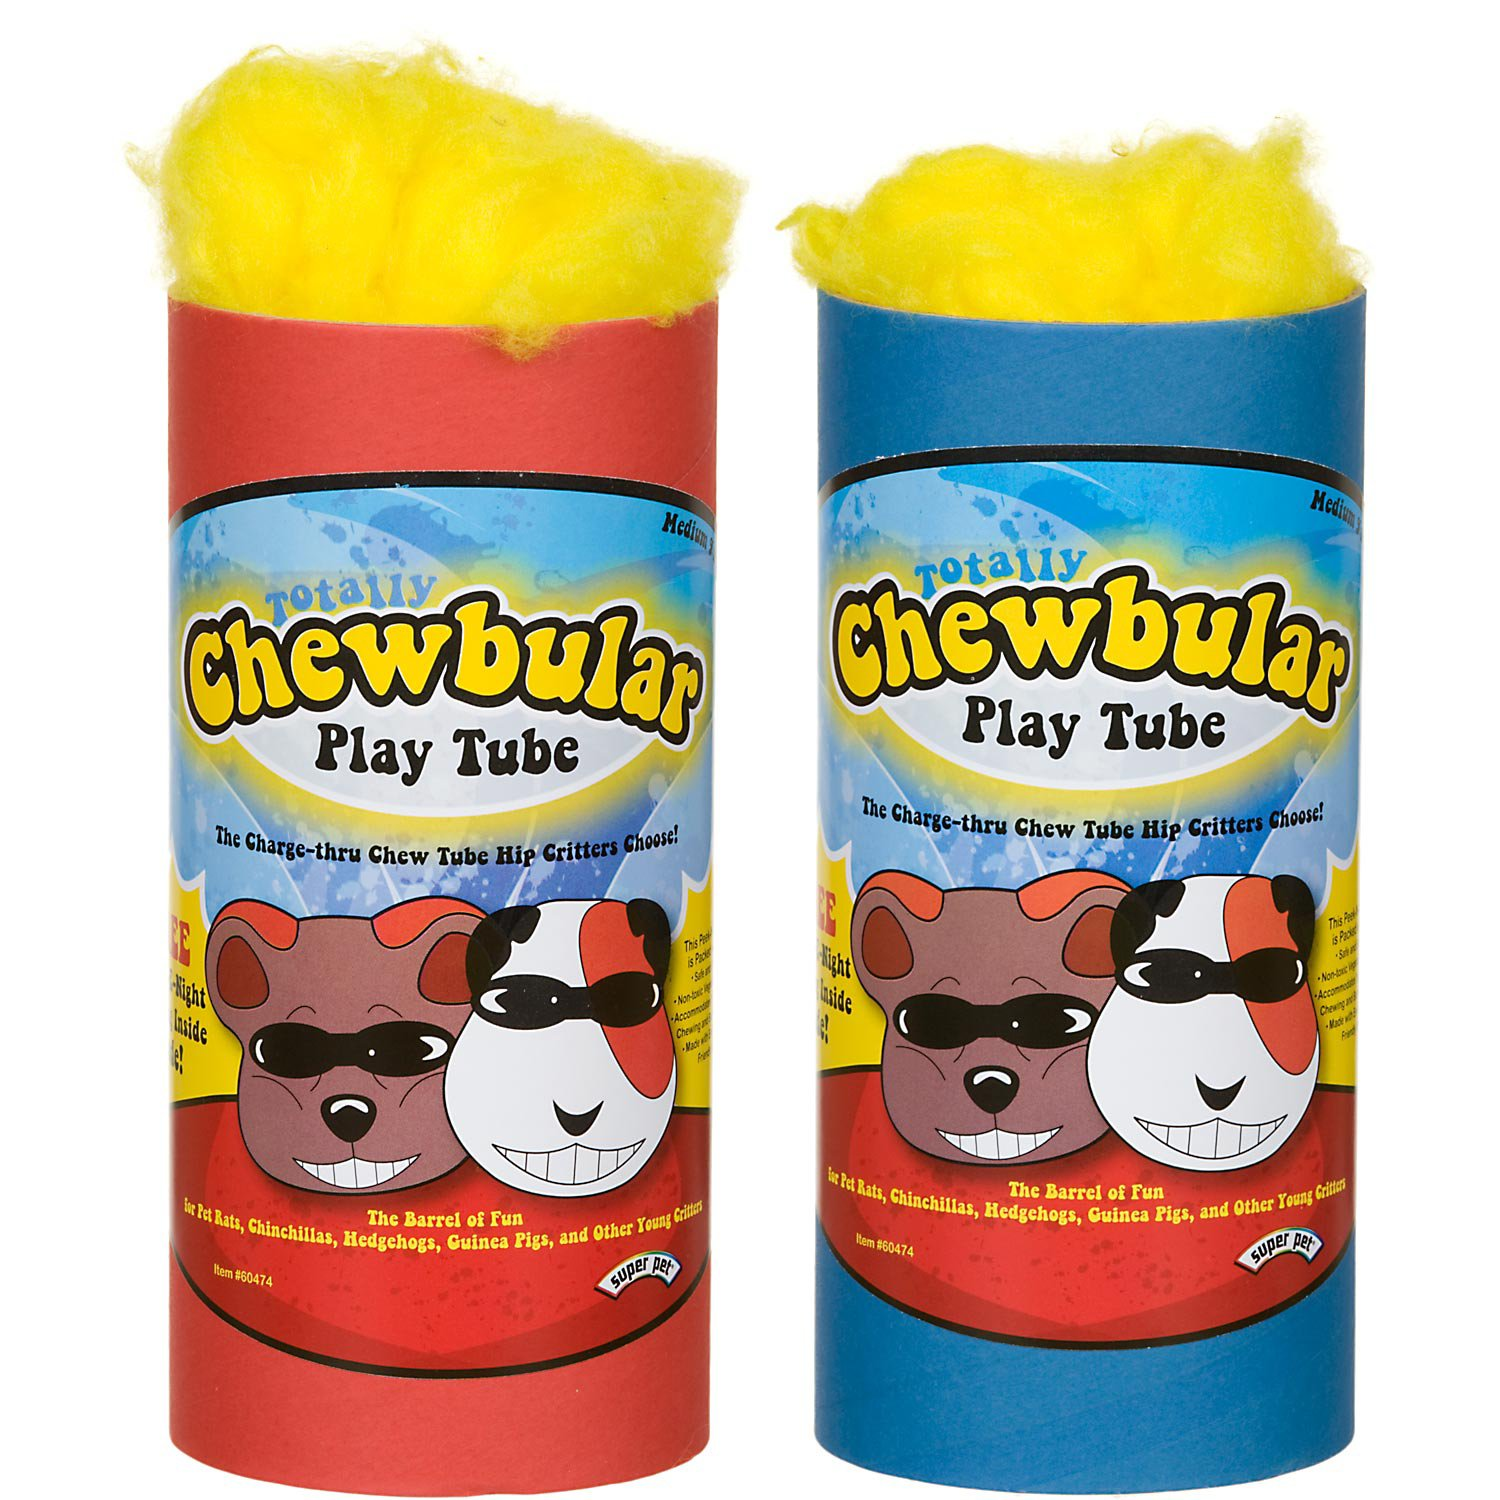 Super Pet Totally Chewbular Play Tubes